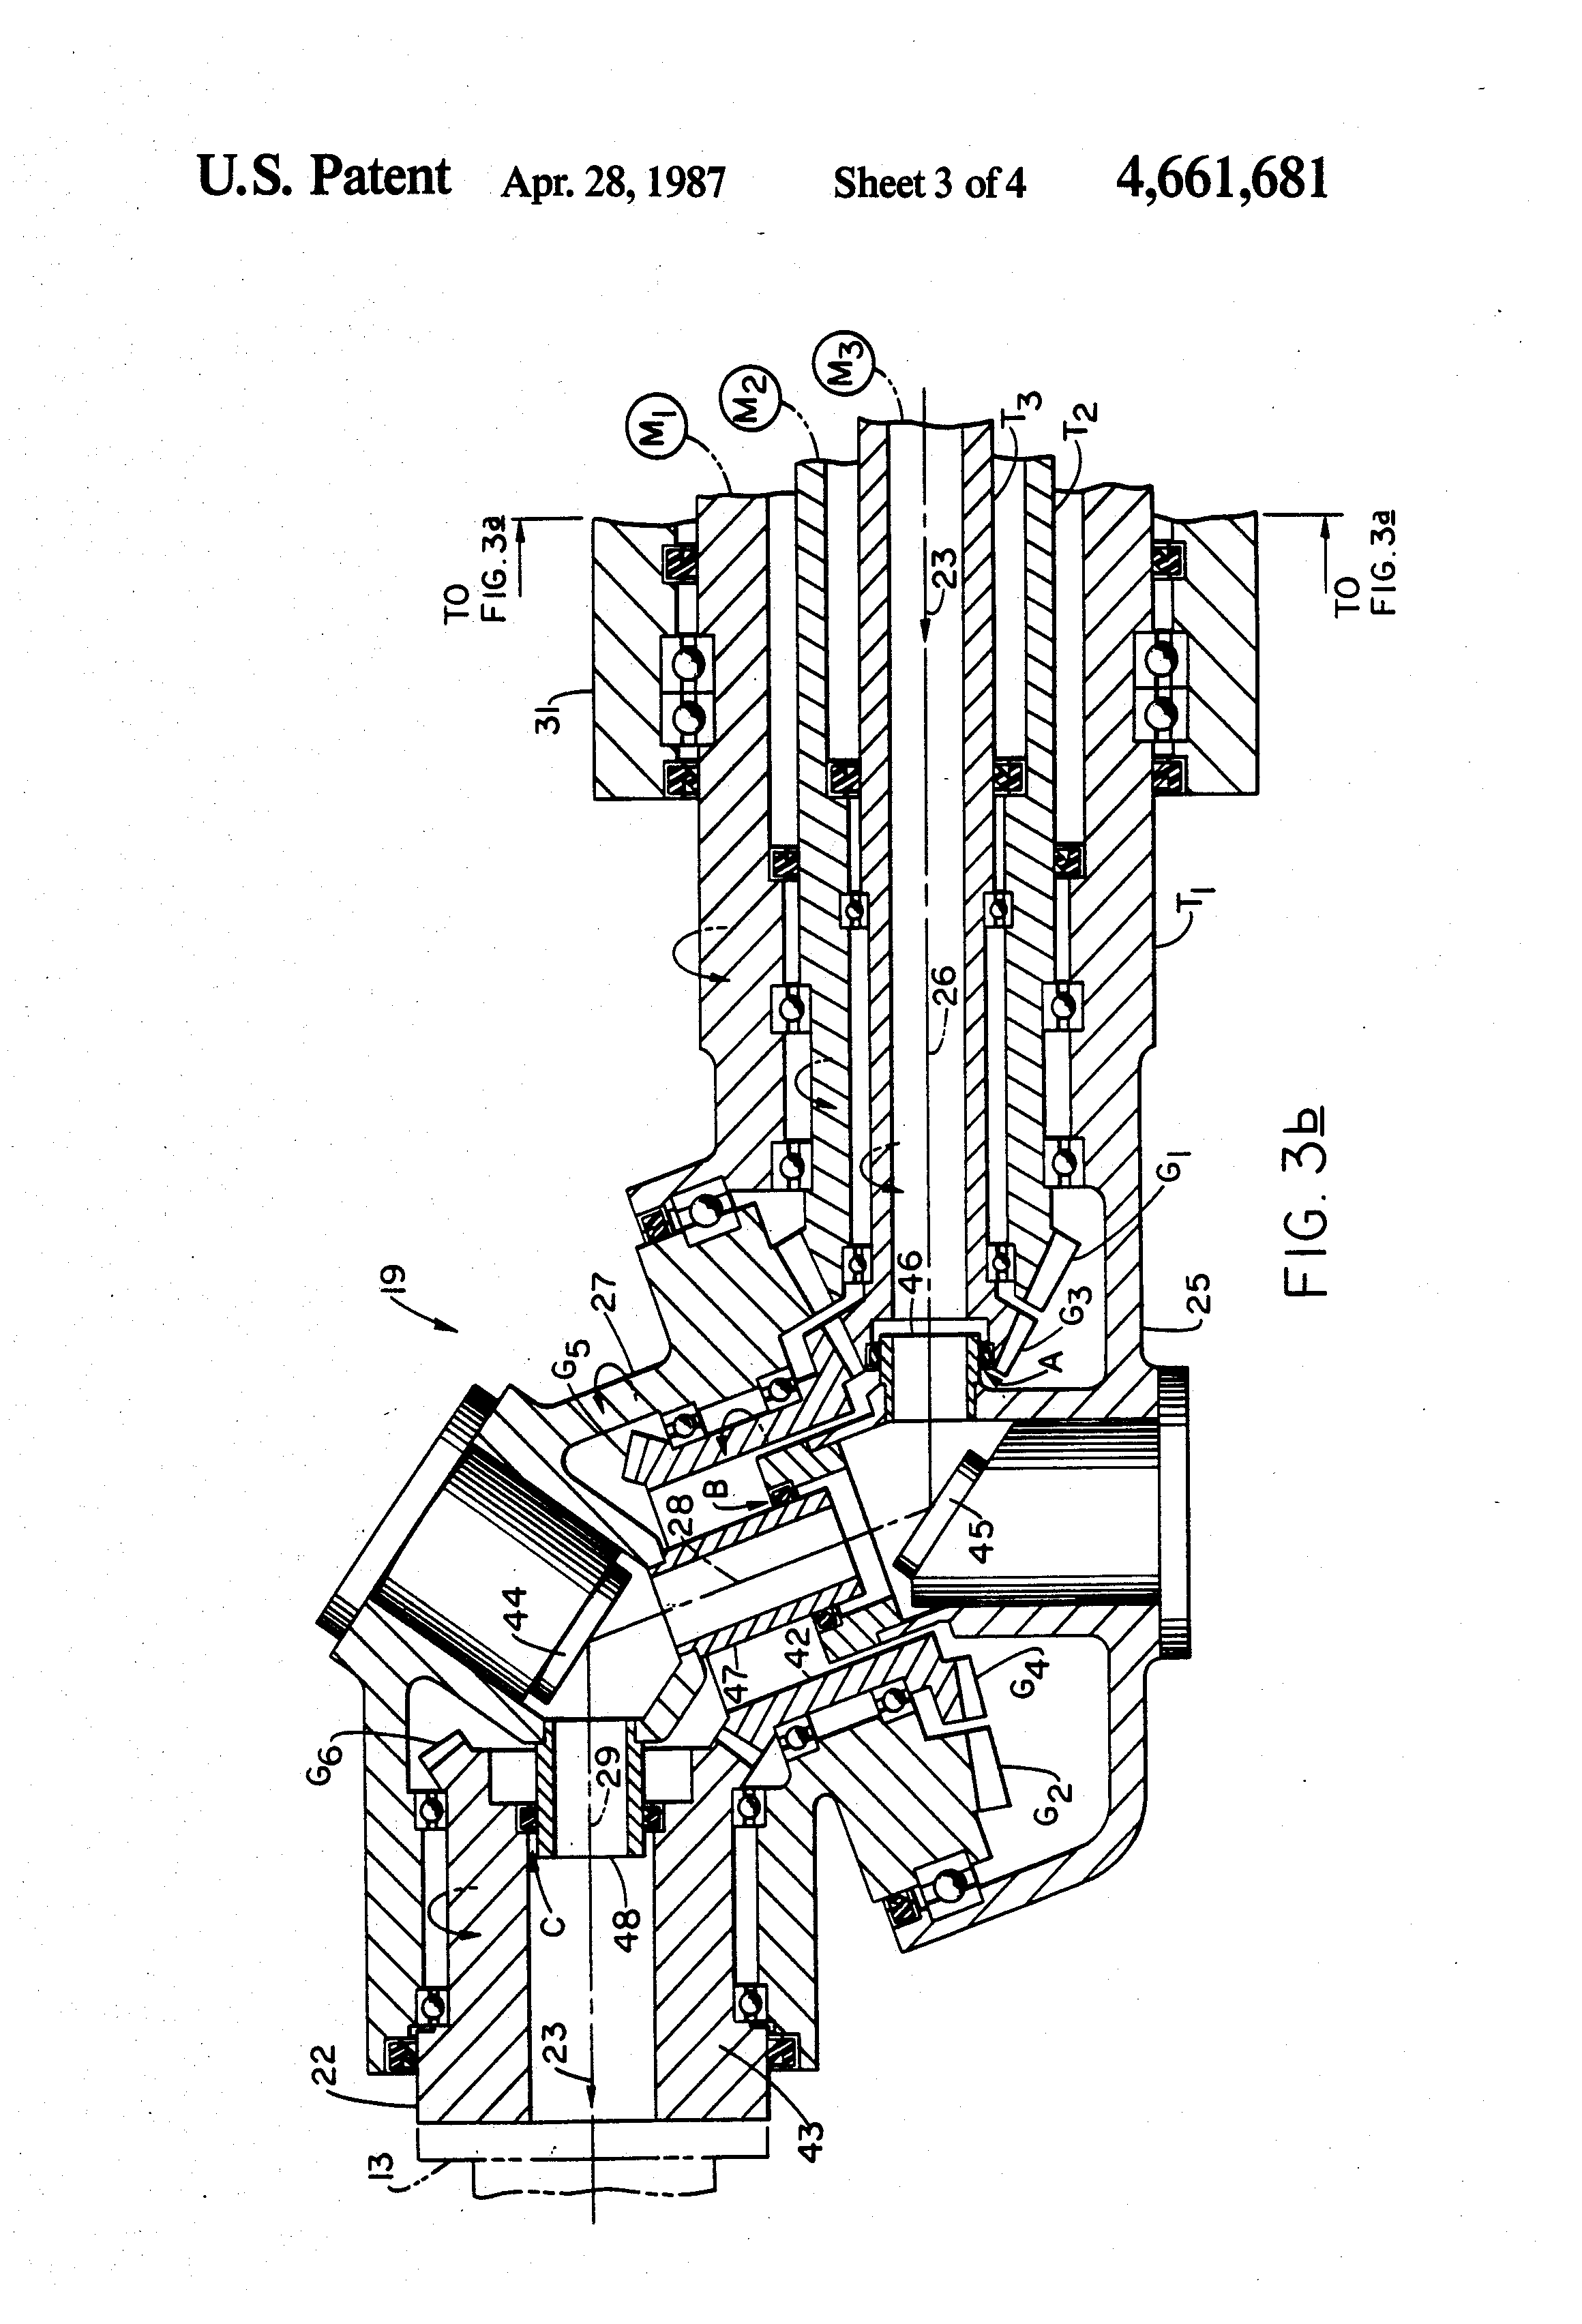 Gmc Cylinder Diagram Trusted Wiring 1992 Radio Acadia Engine Enthusiast Diagrams U2022